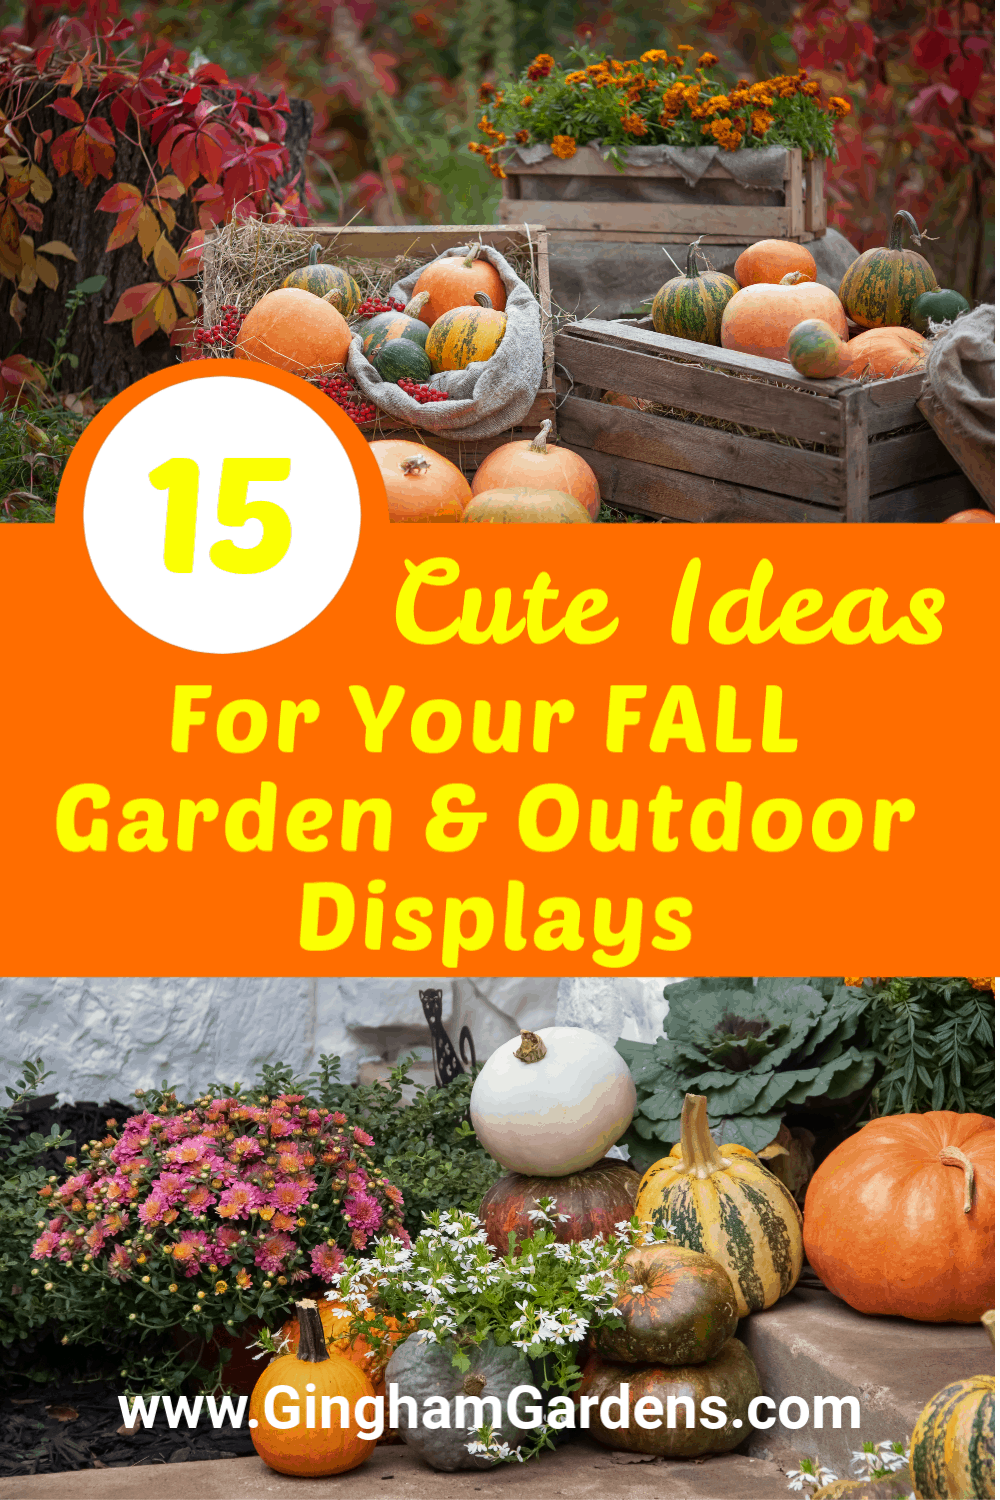 Image of Pumpkins and fall flowers with text overlay - 15 Ideas for your Fall Garden & Outdoor Displays